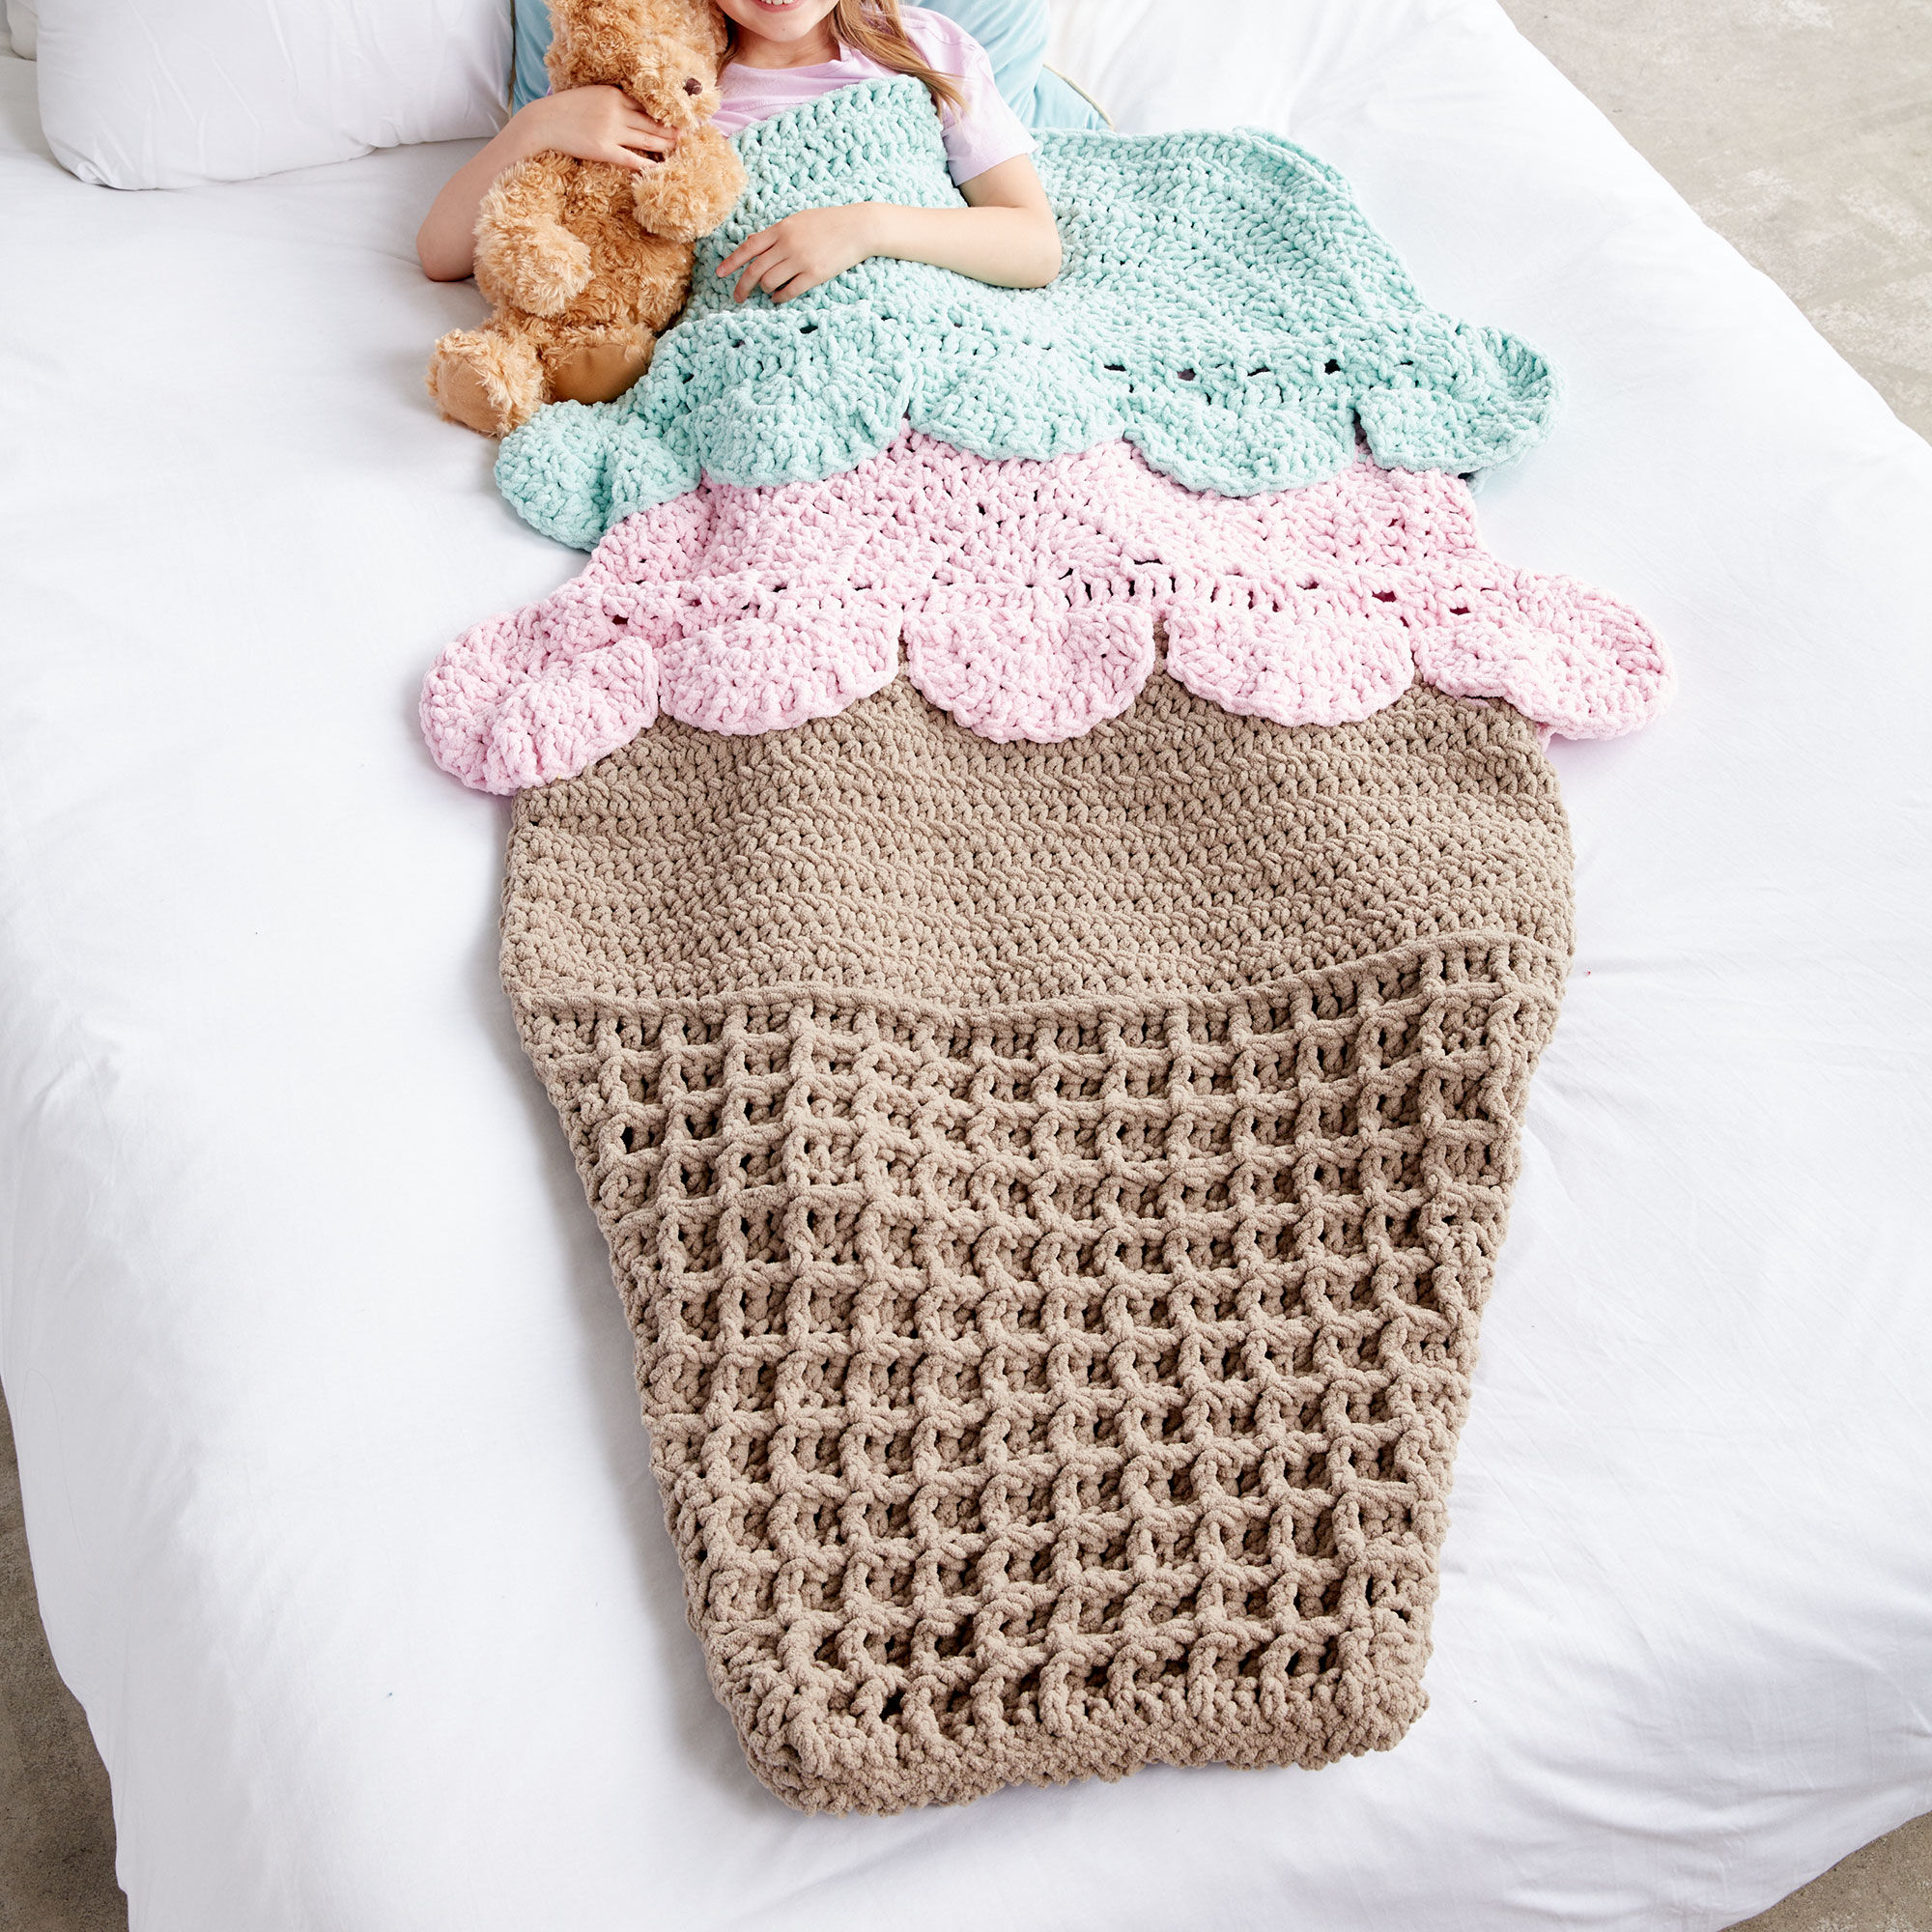 Bernat Double Scoop Crochet Snuggle Sack | Yarnspirations